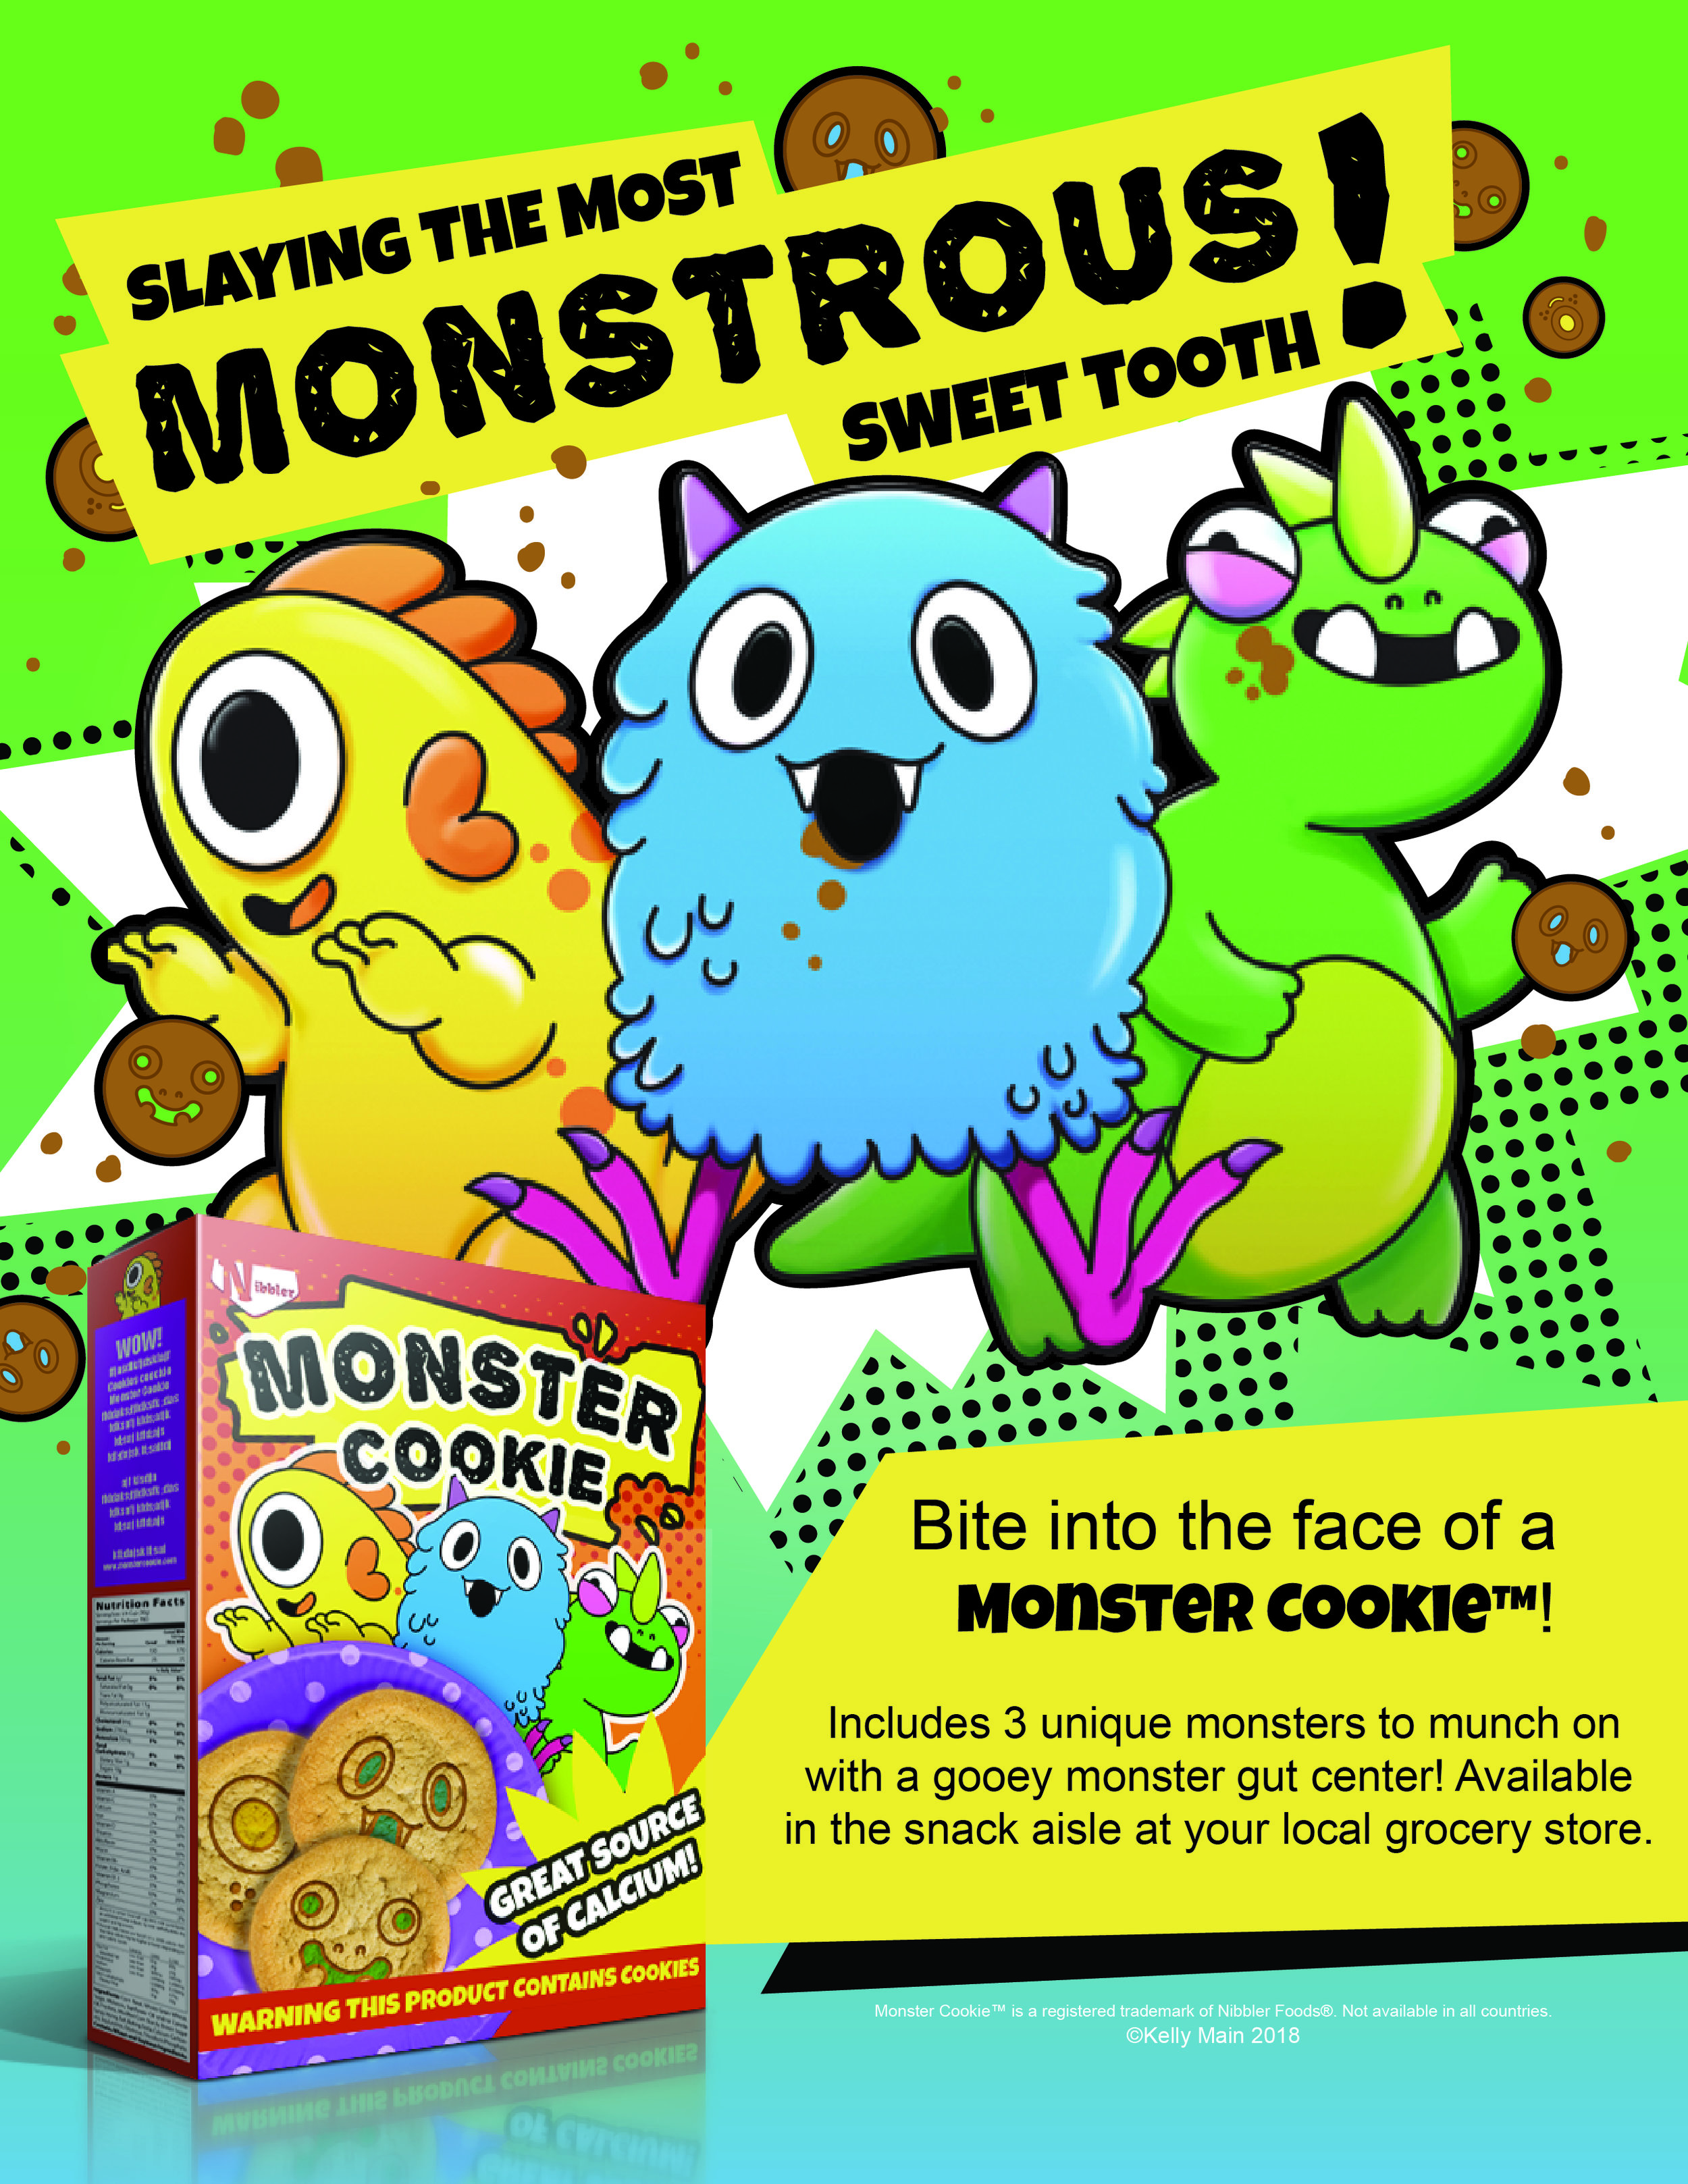 Mascot, Product, and Advertisement Design for Monster Cookie